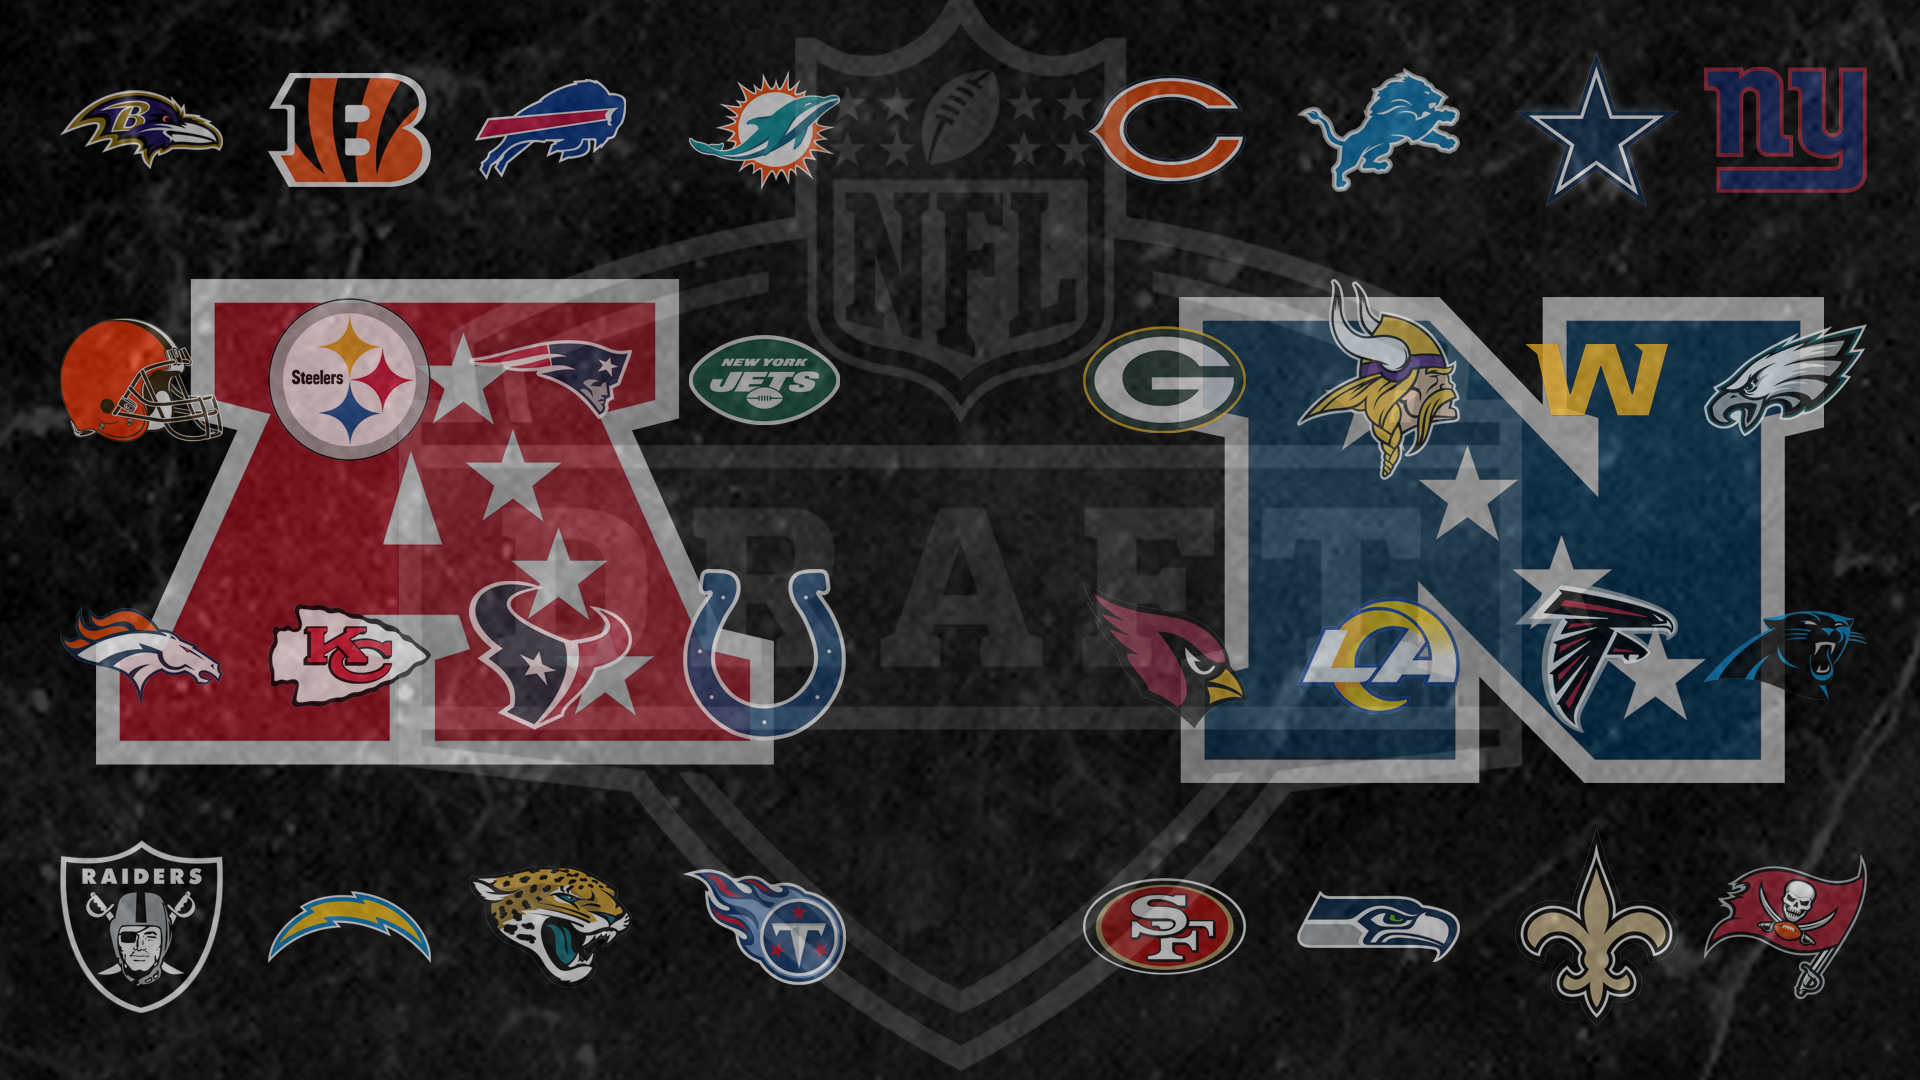 NFL Draft image with all 32 teams and both conference logos